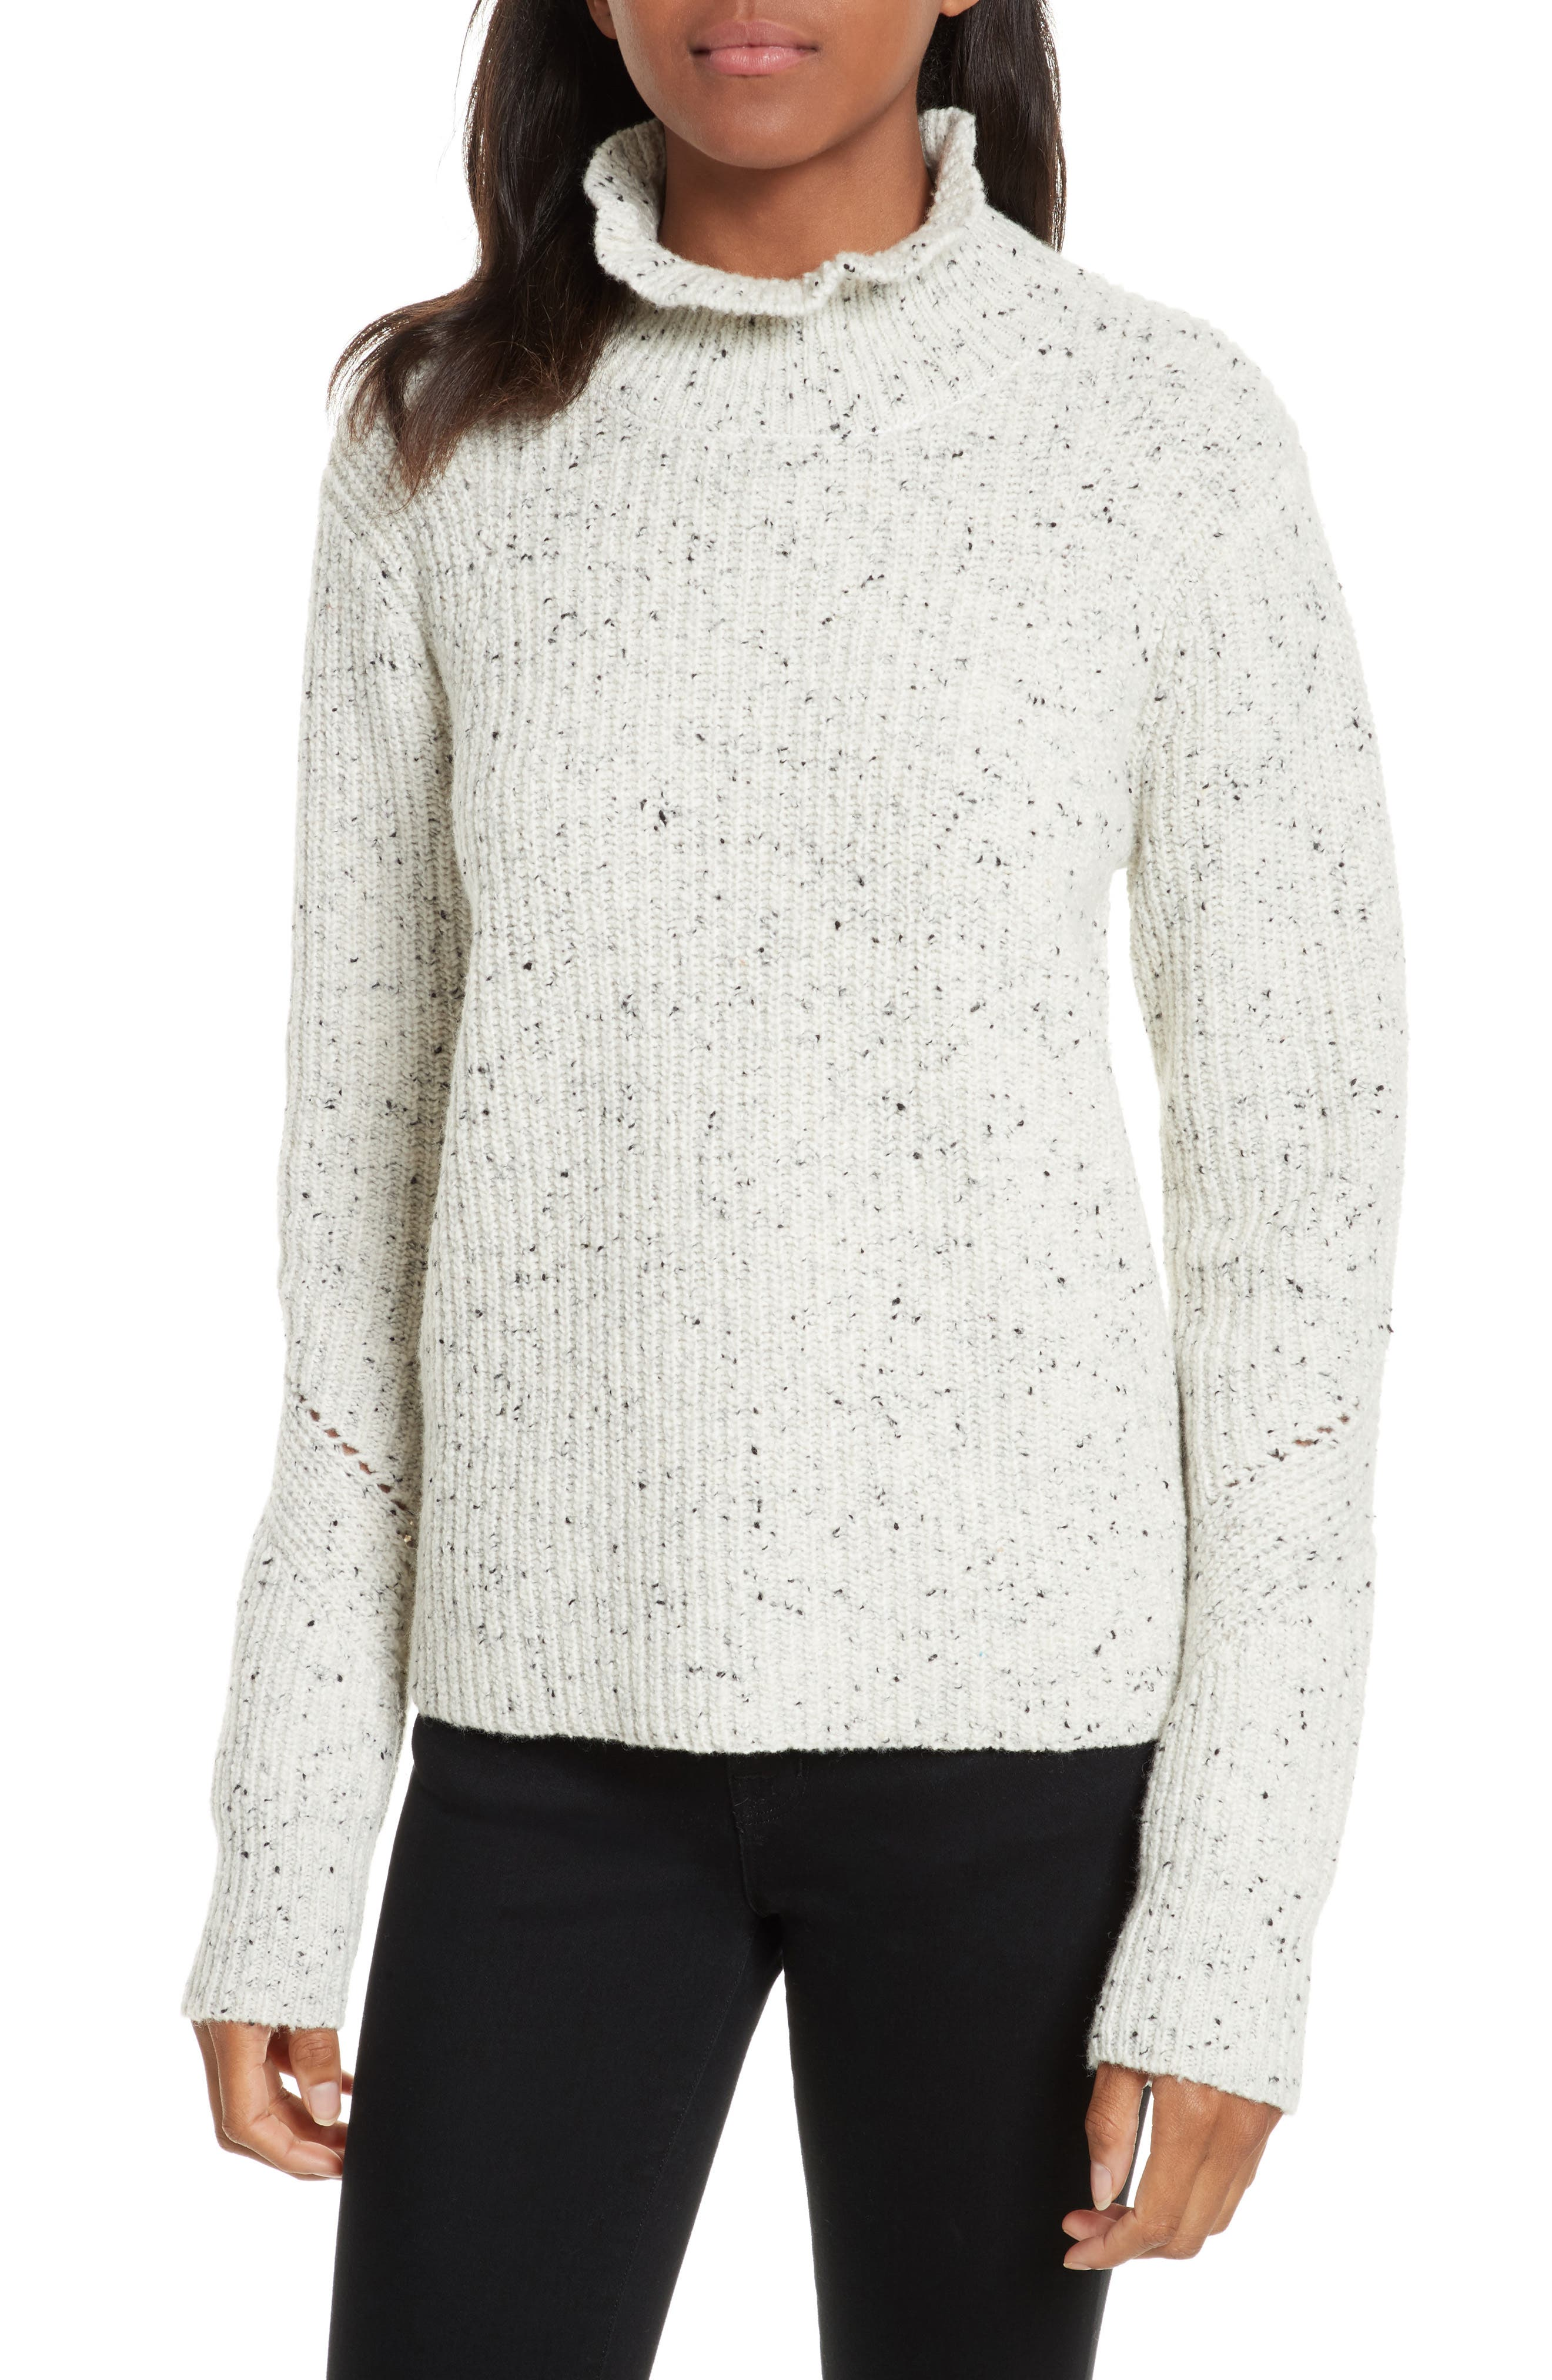 Adaliz Ribbed Ruffle Neck Sweater,                         Main,                         color, 114